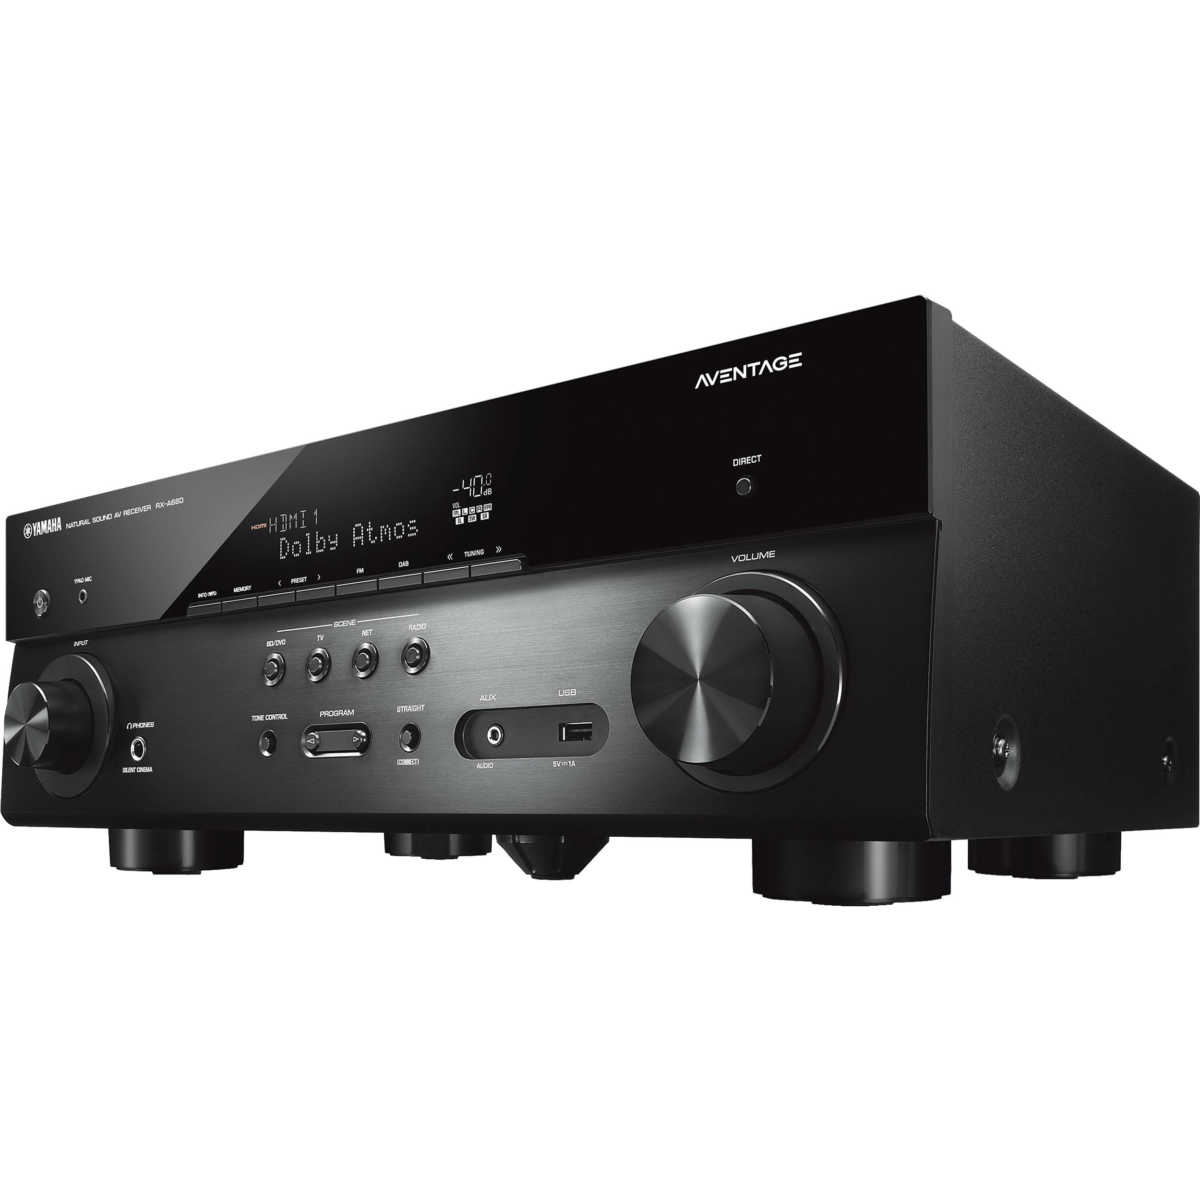 yamaha rxa680 james morrow the home entertainment specialist. Black Bedroom Furniture Sets. Home Design Ideas